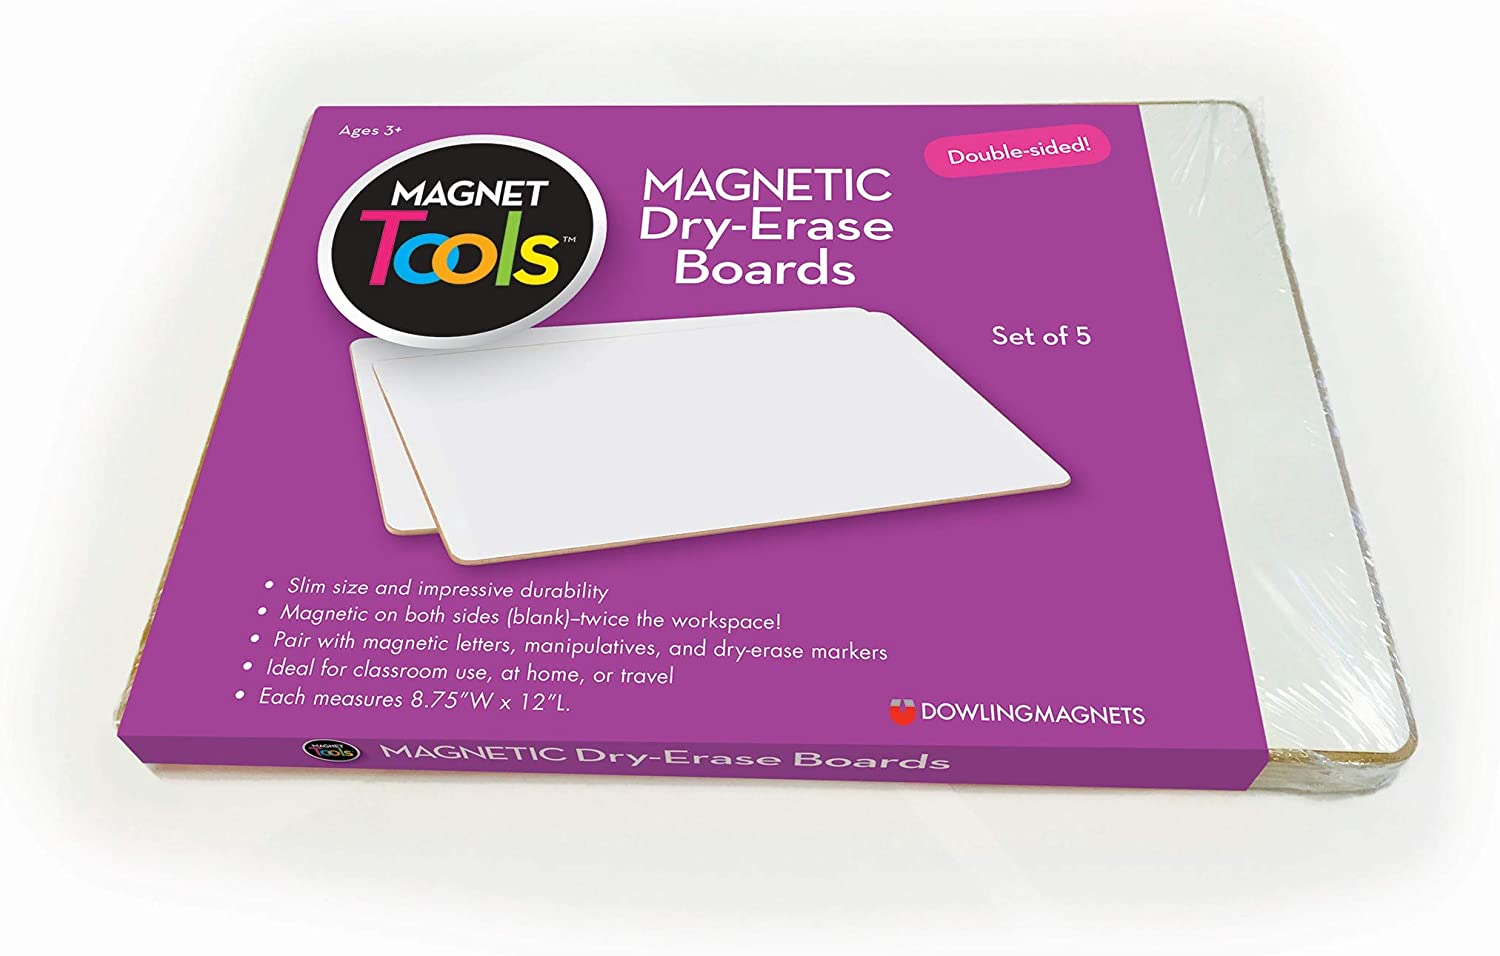 """Dowling Magnets Magnetic Dry-Erase Boards (Double-Sided Blank), 5 Pack, 12"""" Long x 8.75"""" Wide (735207)"""